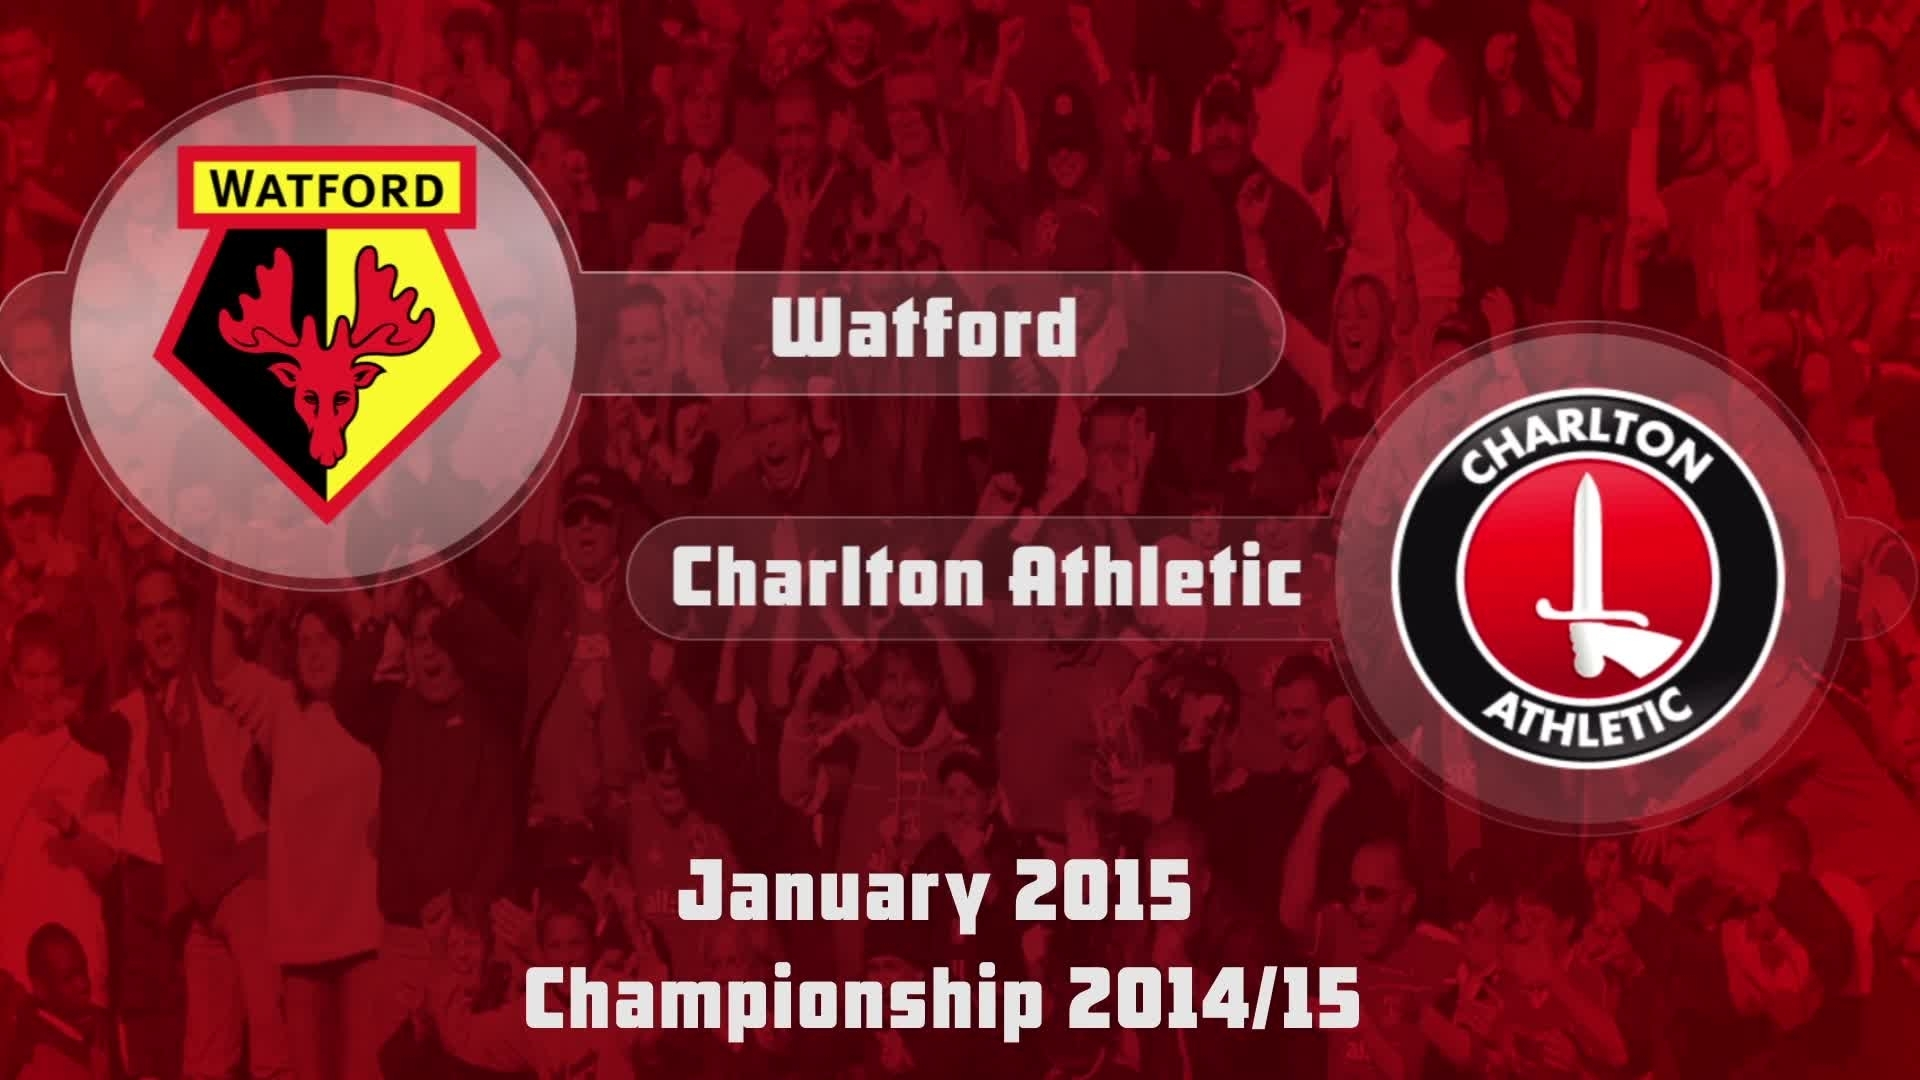 29 HIGHLIGHTS | Watford 5 Charlton 0 (Jan 2015)